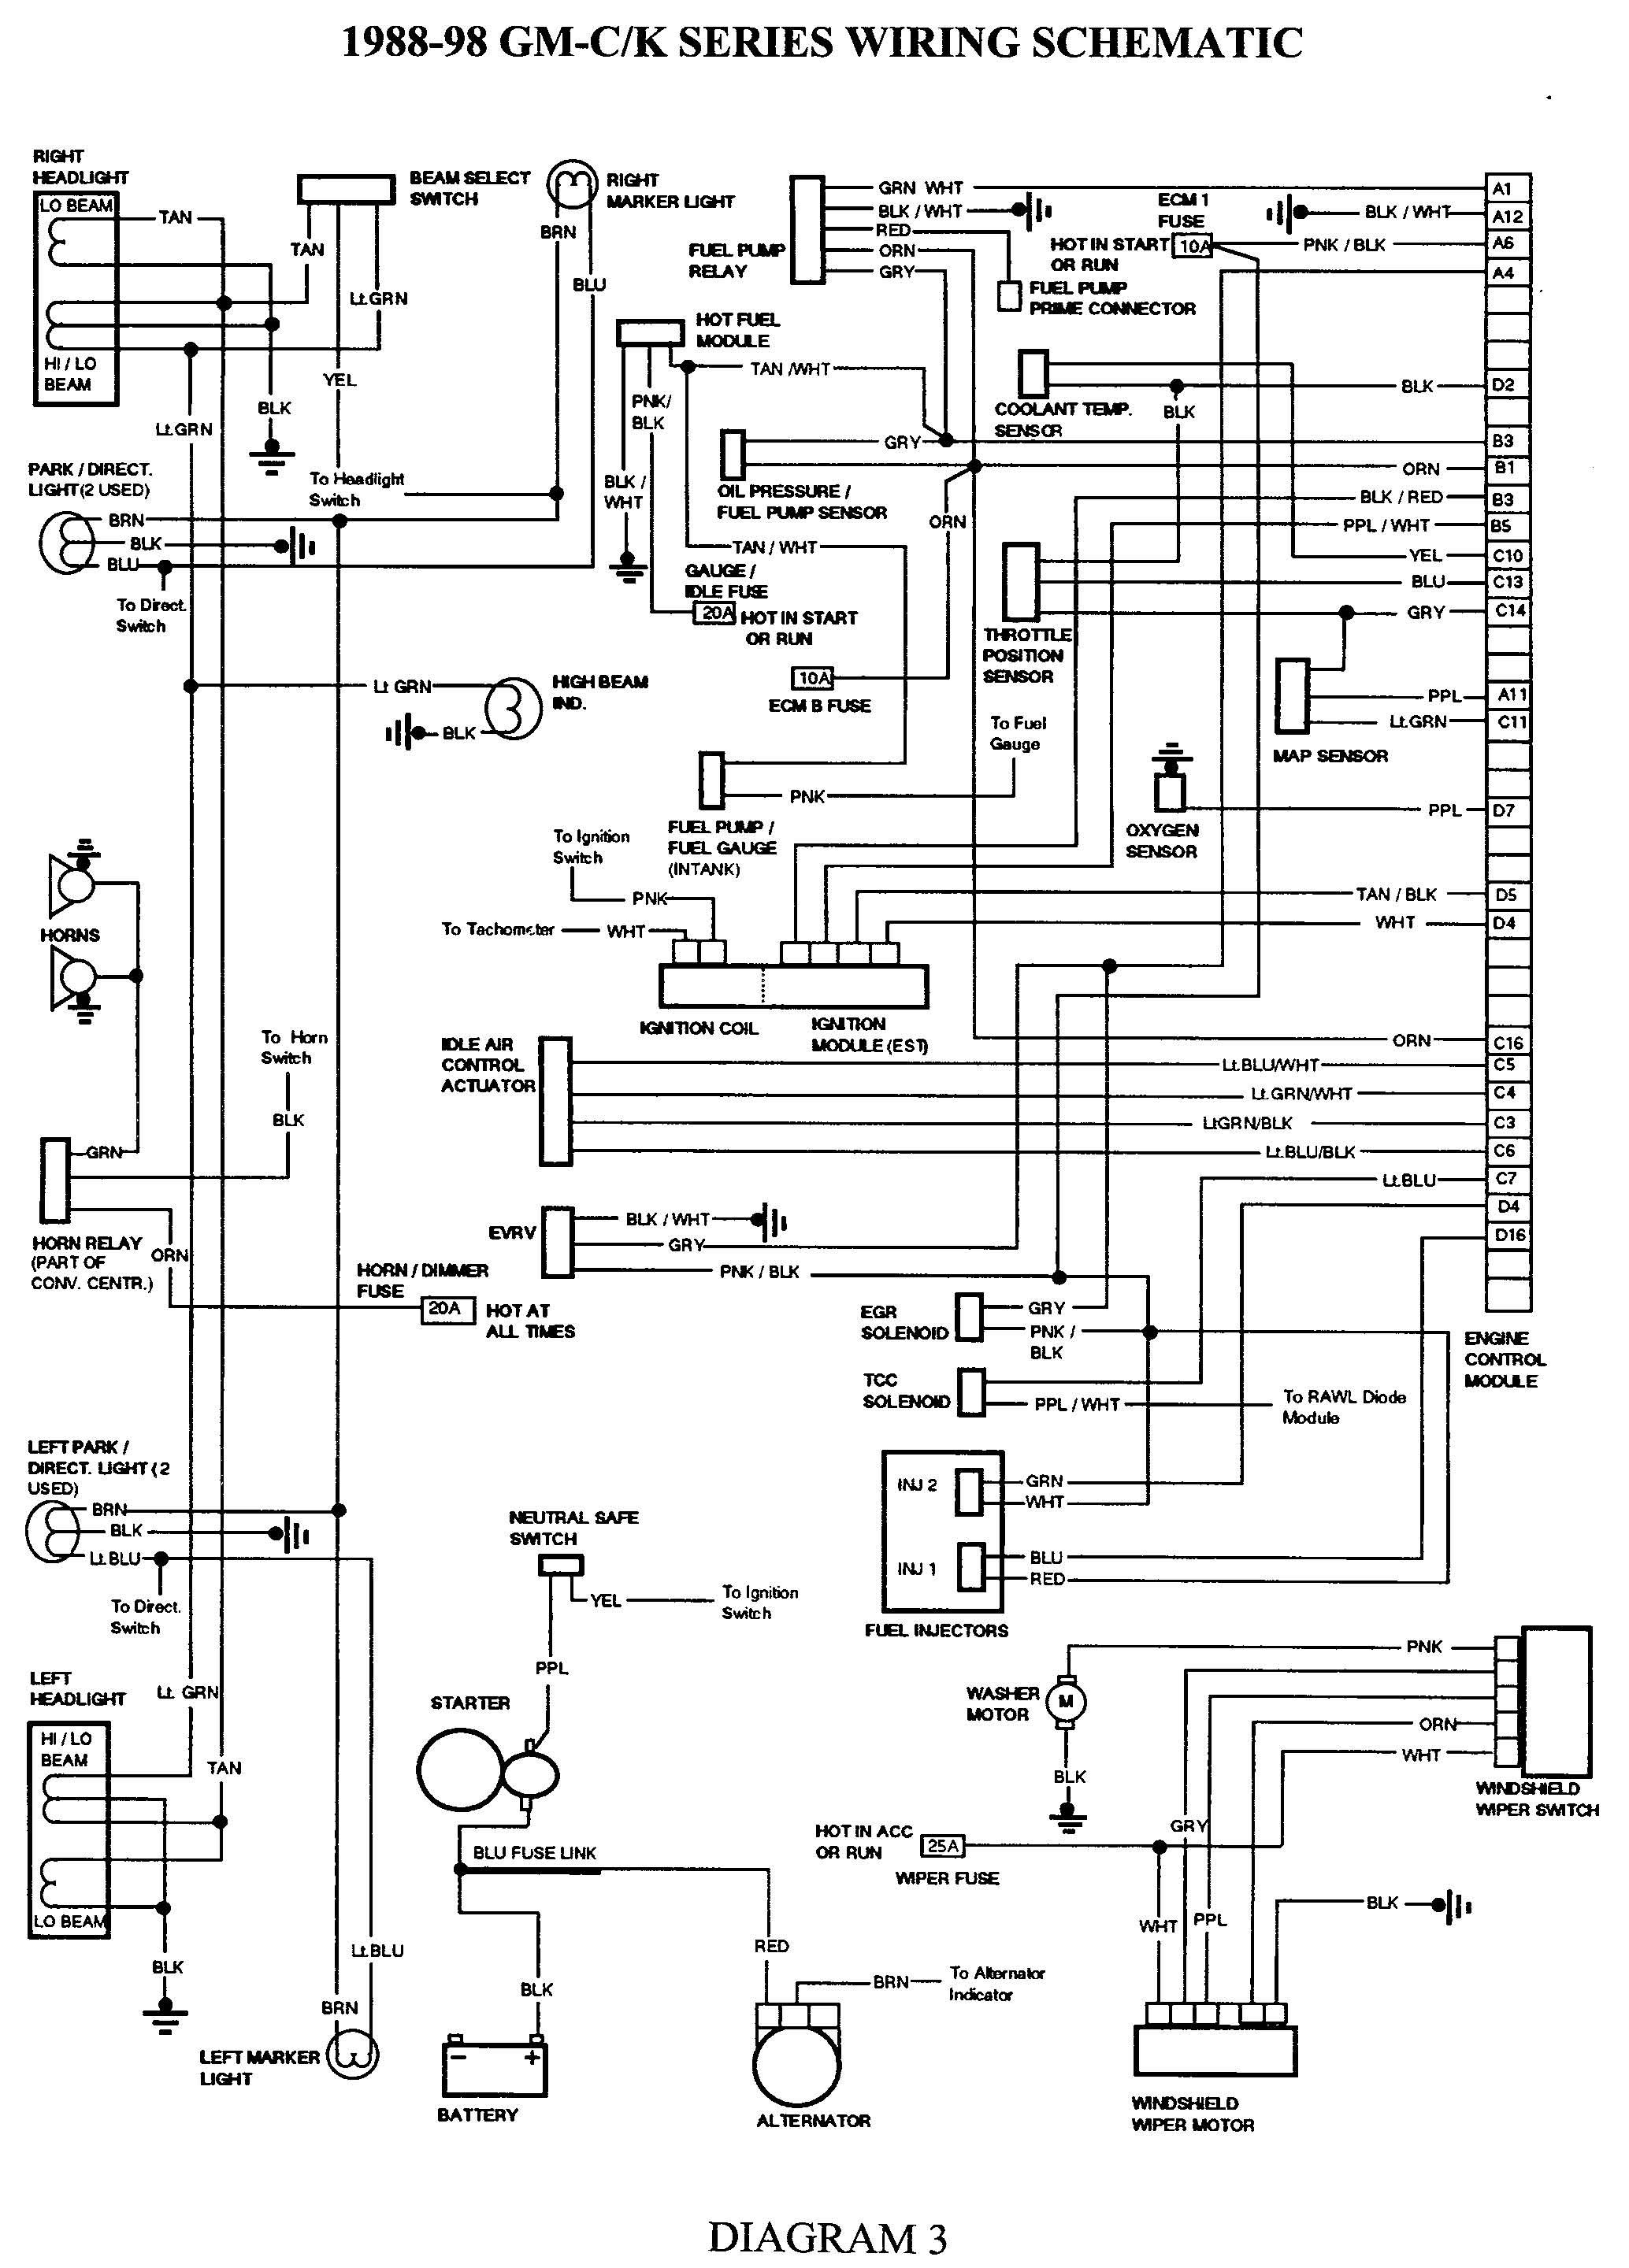 b2f2e5dbdc07dada83ef514f6d4ce3d4 gmc truck wiring diagrams on gm wiring harness diagram 88 98 kc chevy wiring harness at aneh.co